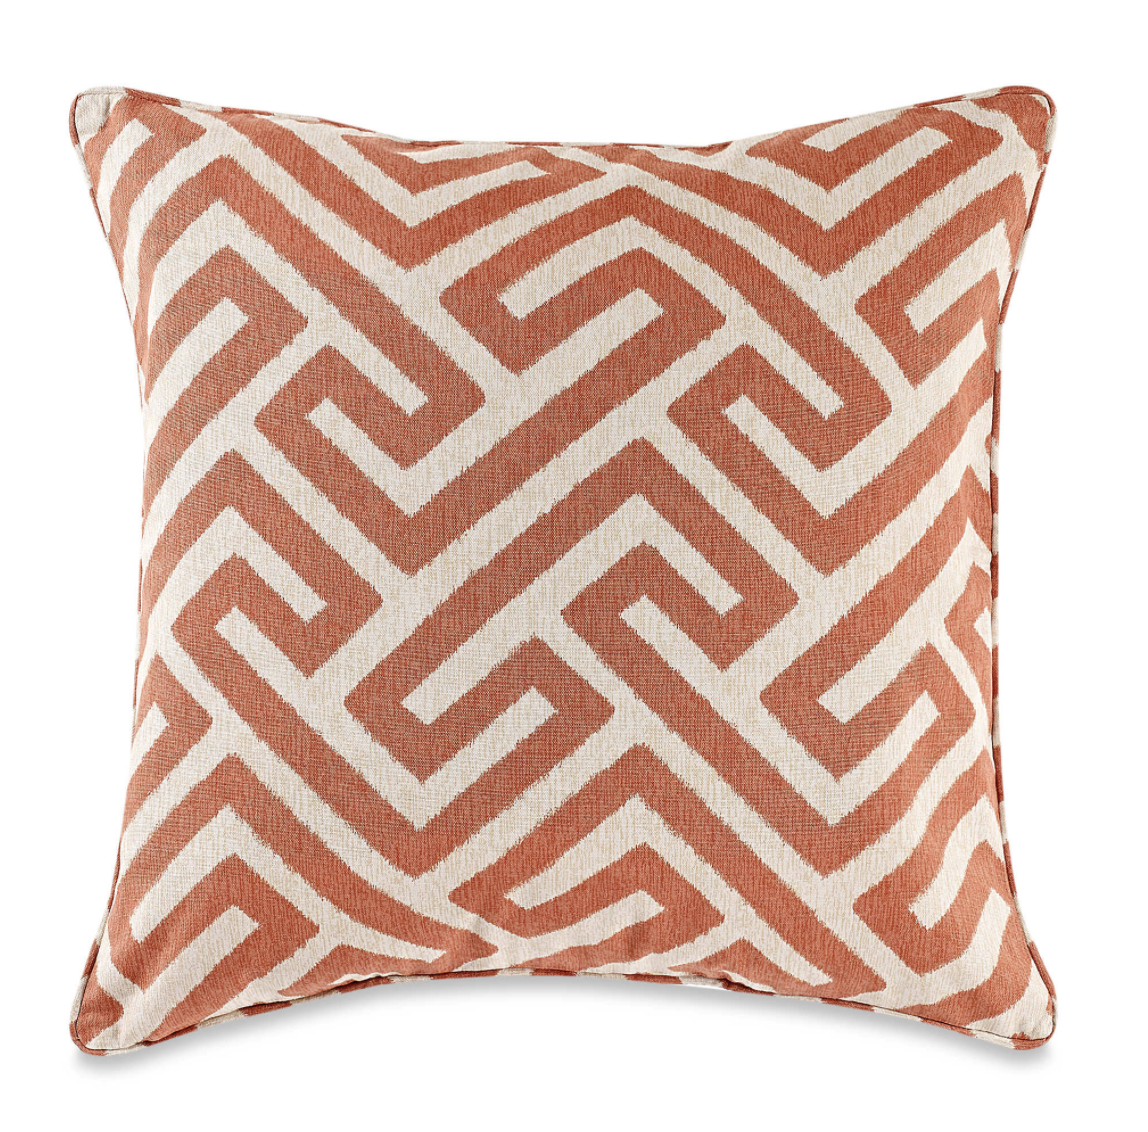 Pillow Cover, $14.9